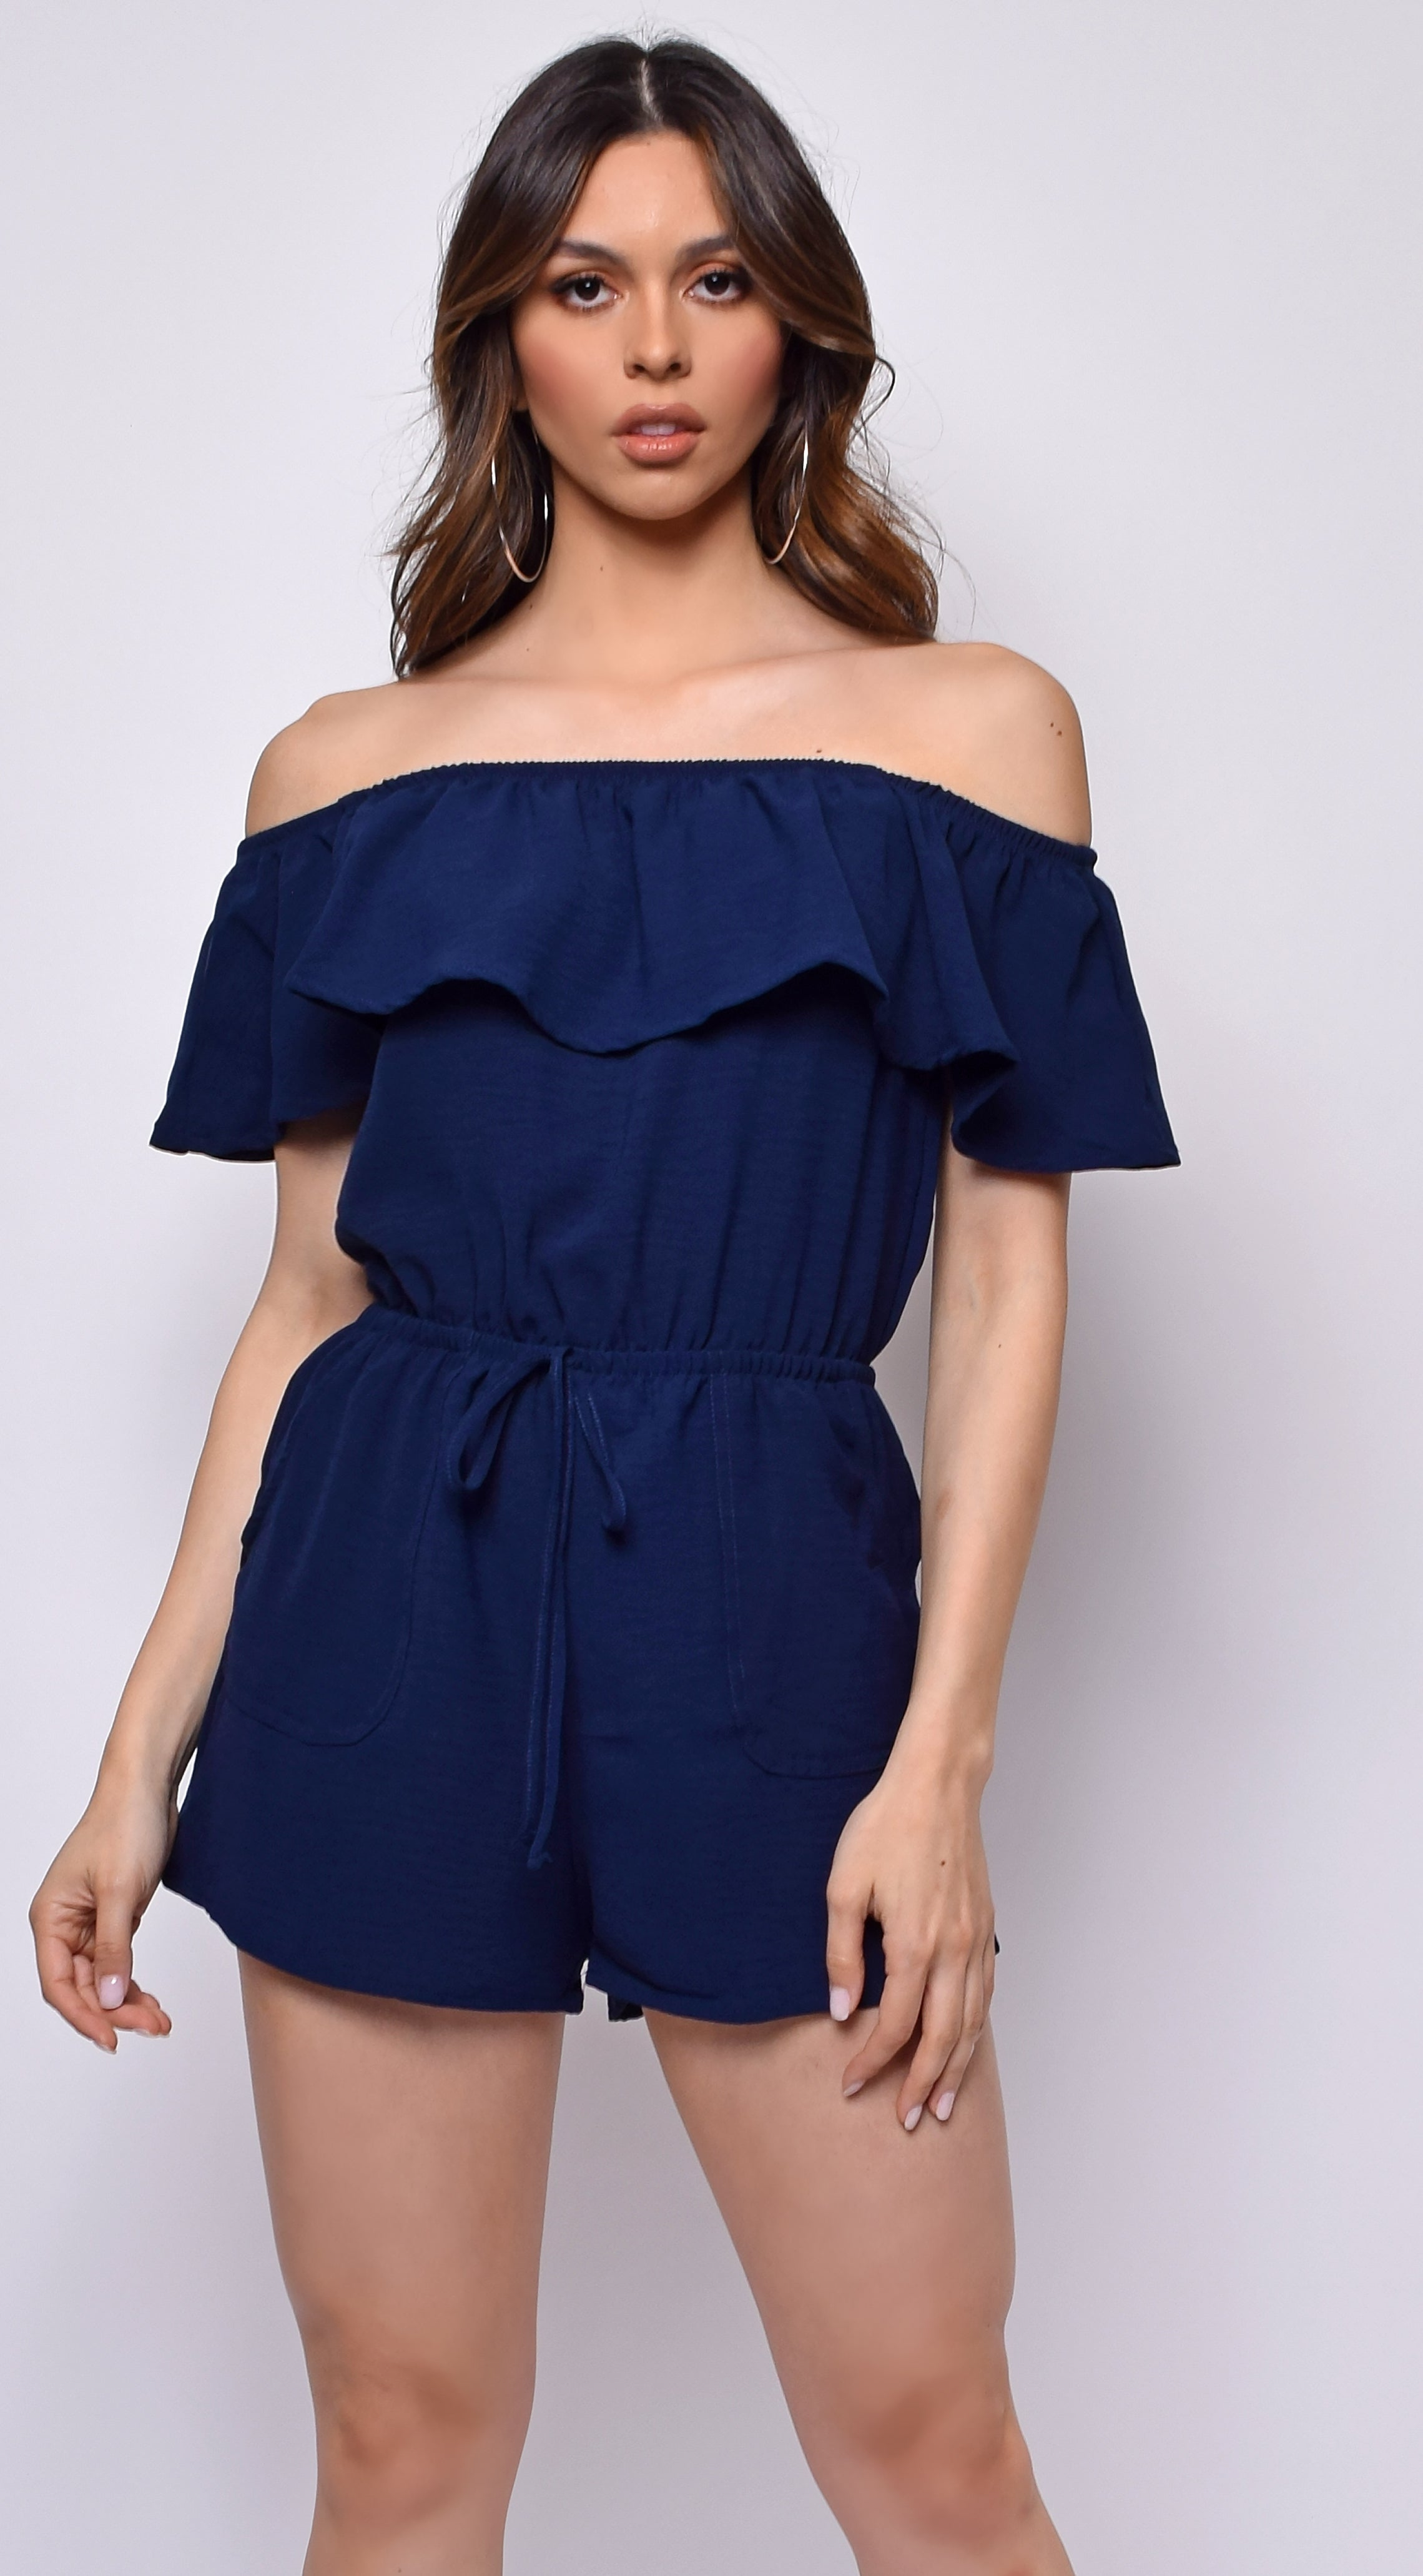 Alessia Navy Blue Off Shoulder Romper